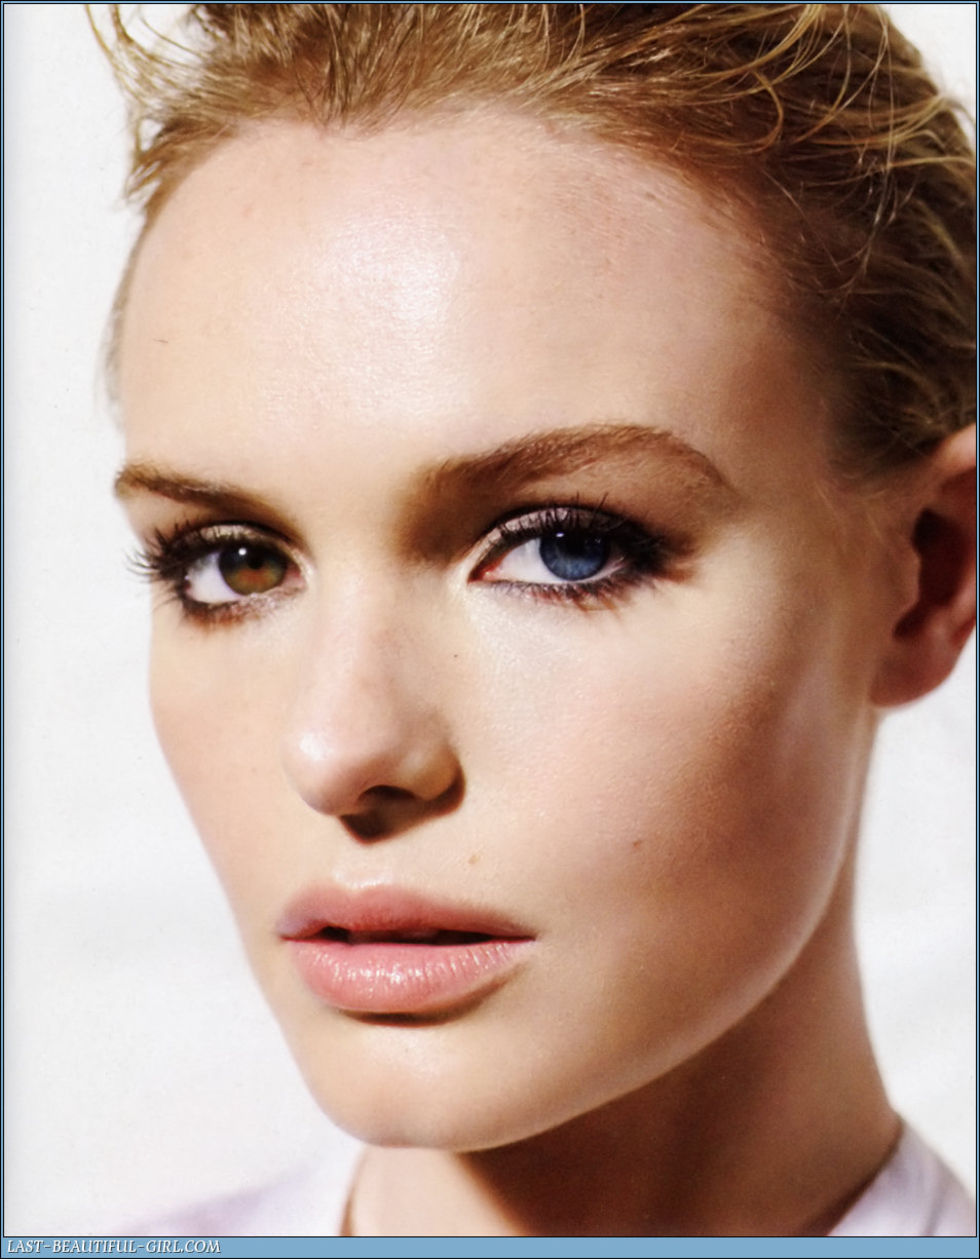 kate-bosworth-marie-claire-magazine-april-2008-01